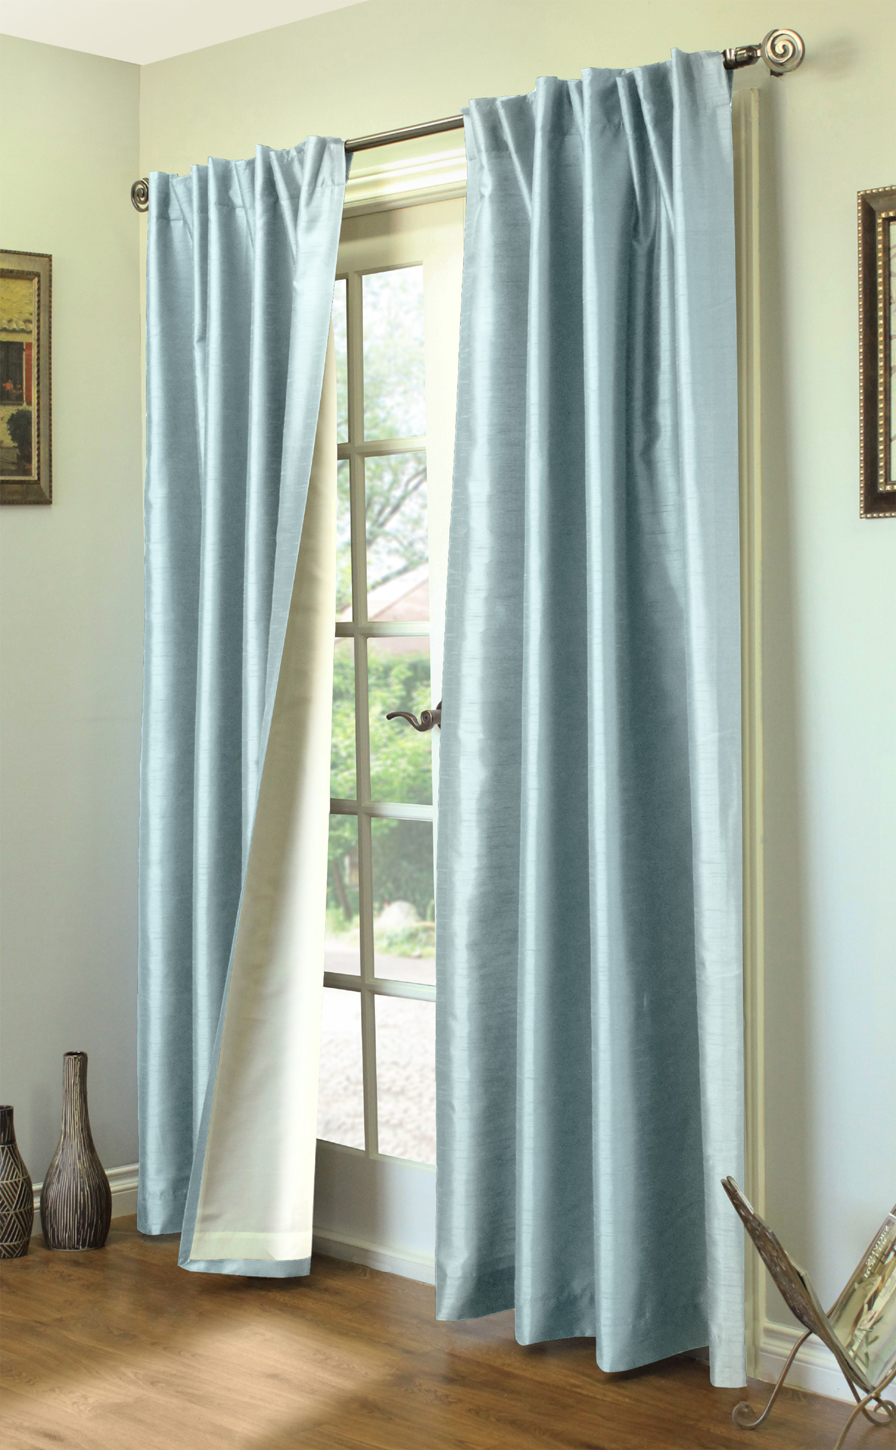 panels cur curtains organza sheer pack pocket window curtain of products rod x navy blue with treatment